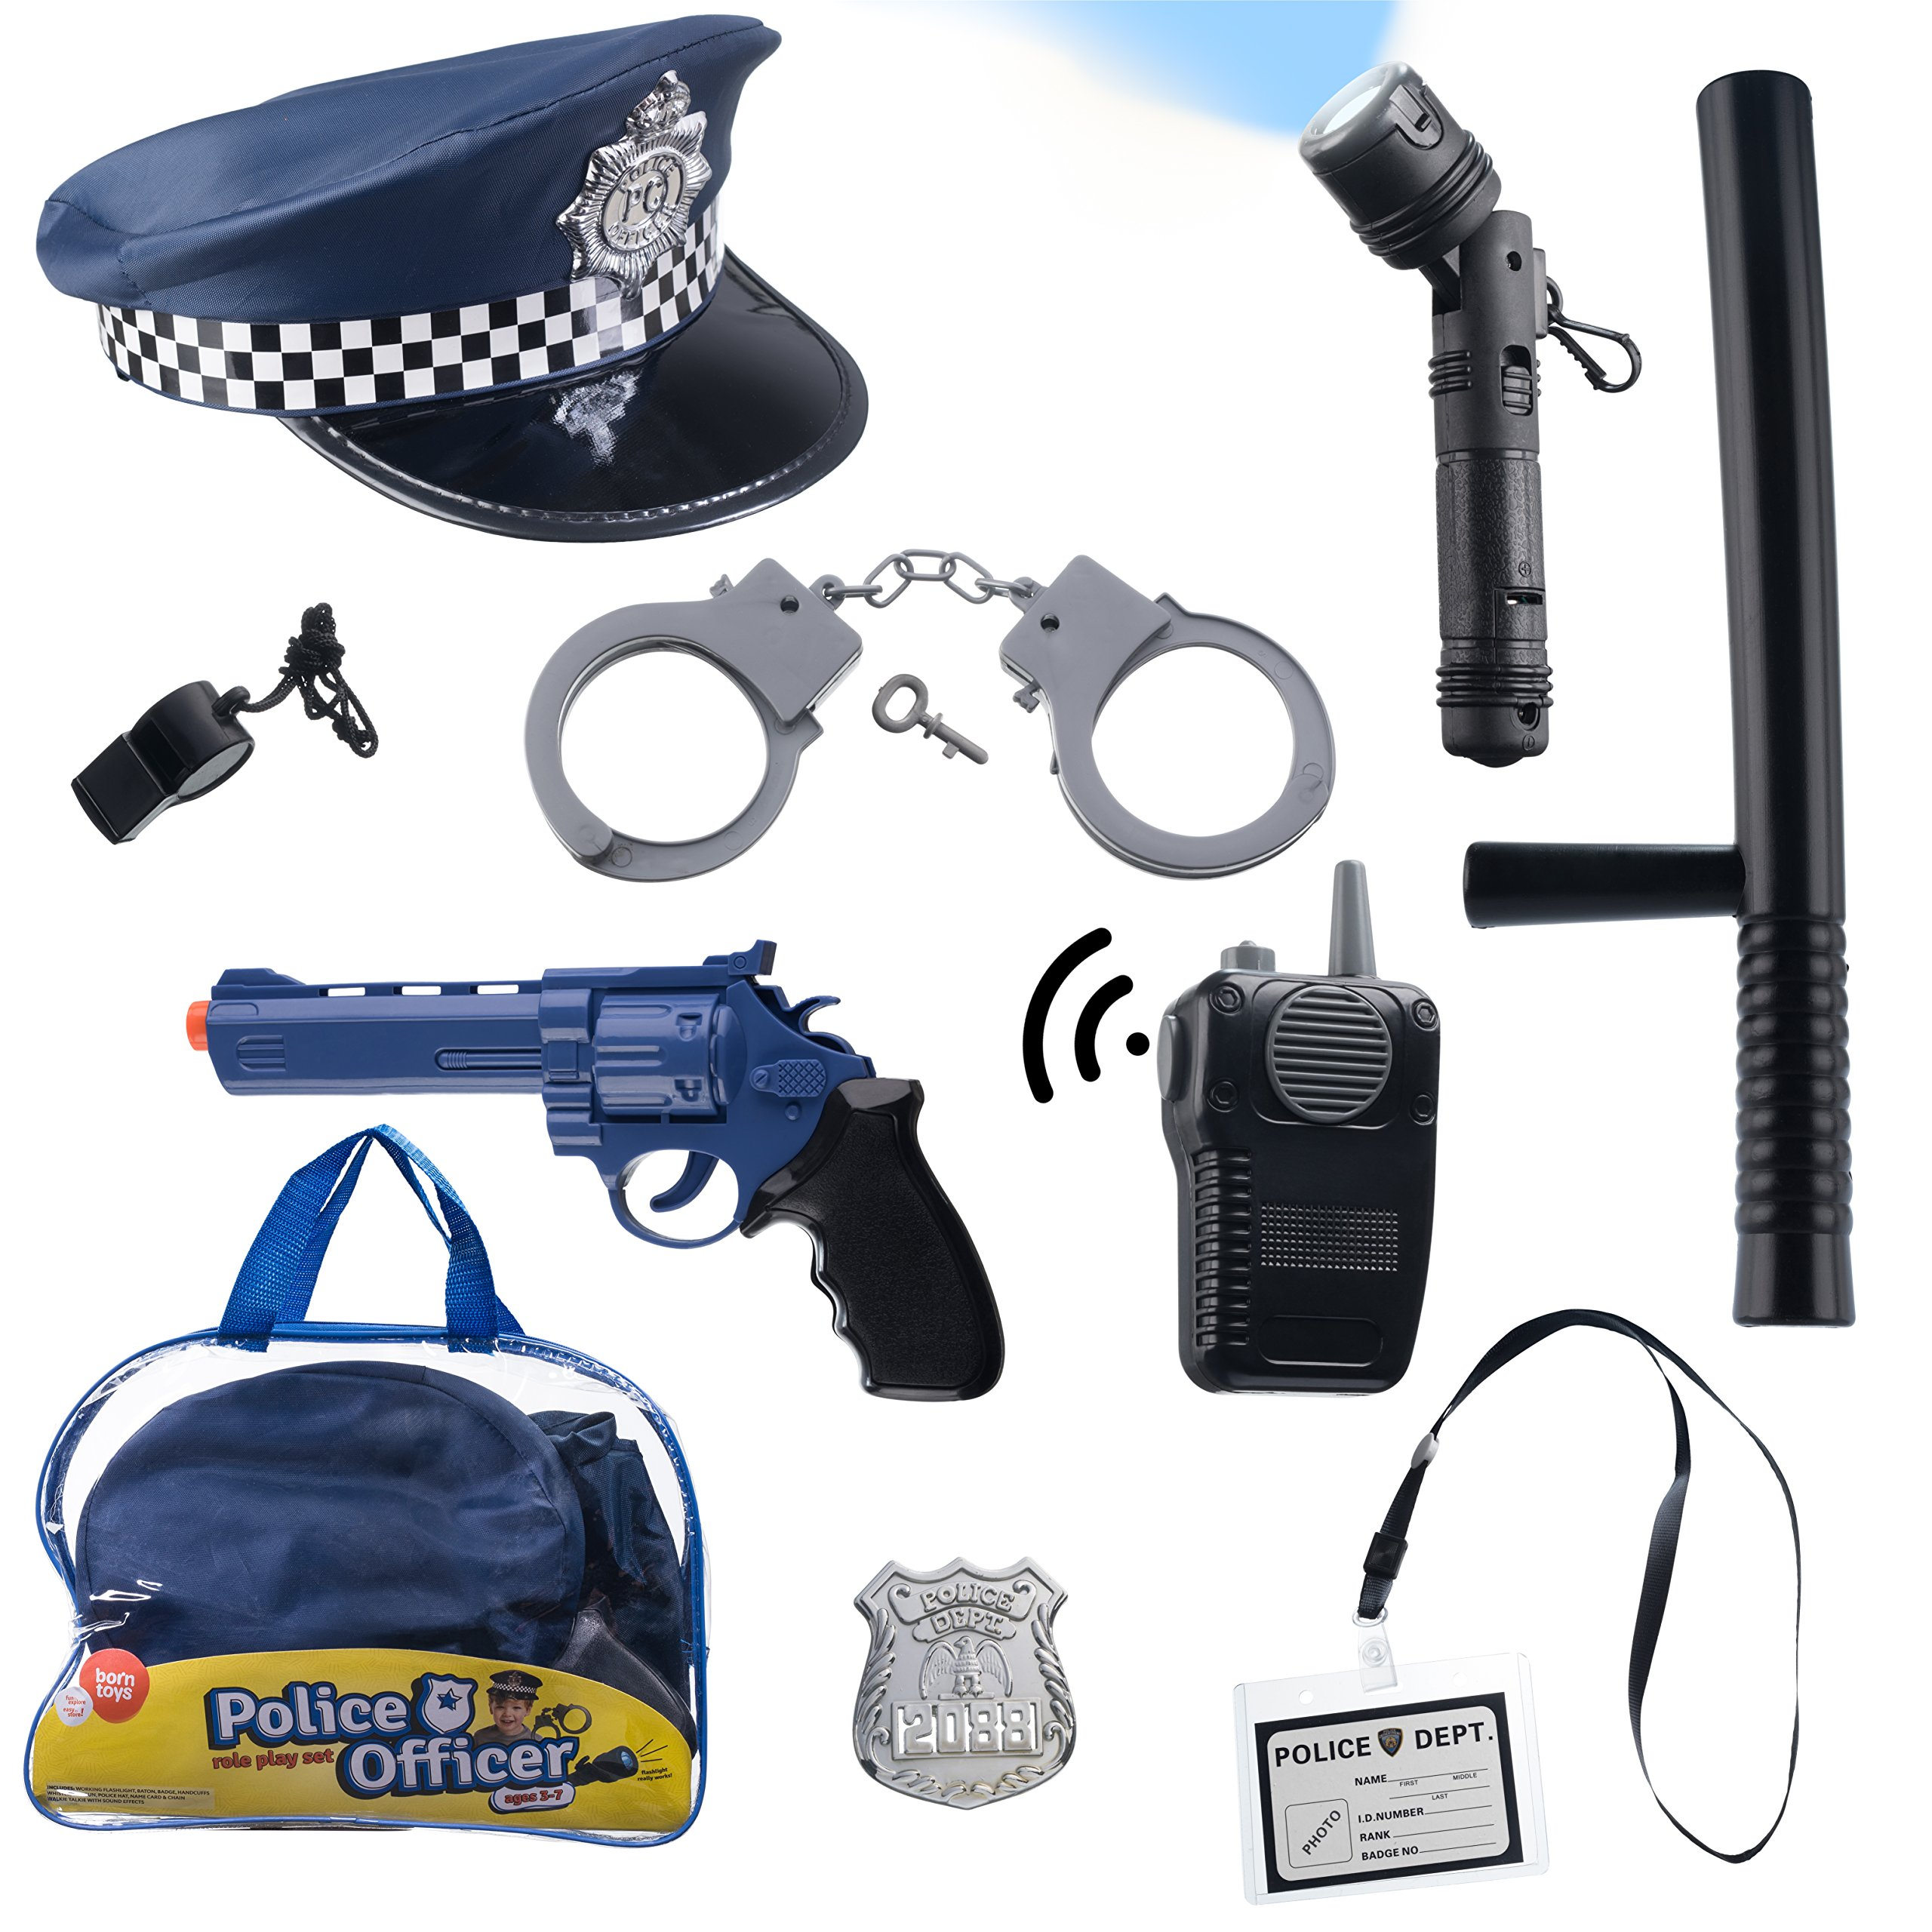 Born Toys (11 PCS) Police Hat and Toys role play set for Swat, Detective,FBI, Halloween and Police Costume Dress up by Born Toys